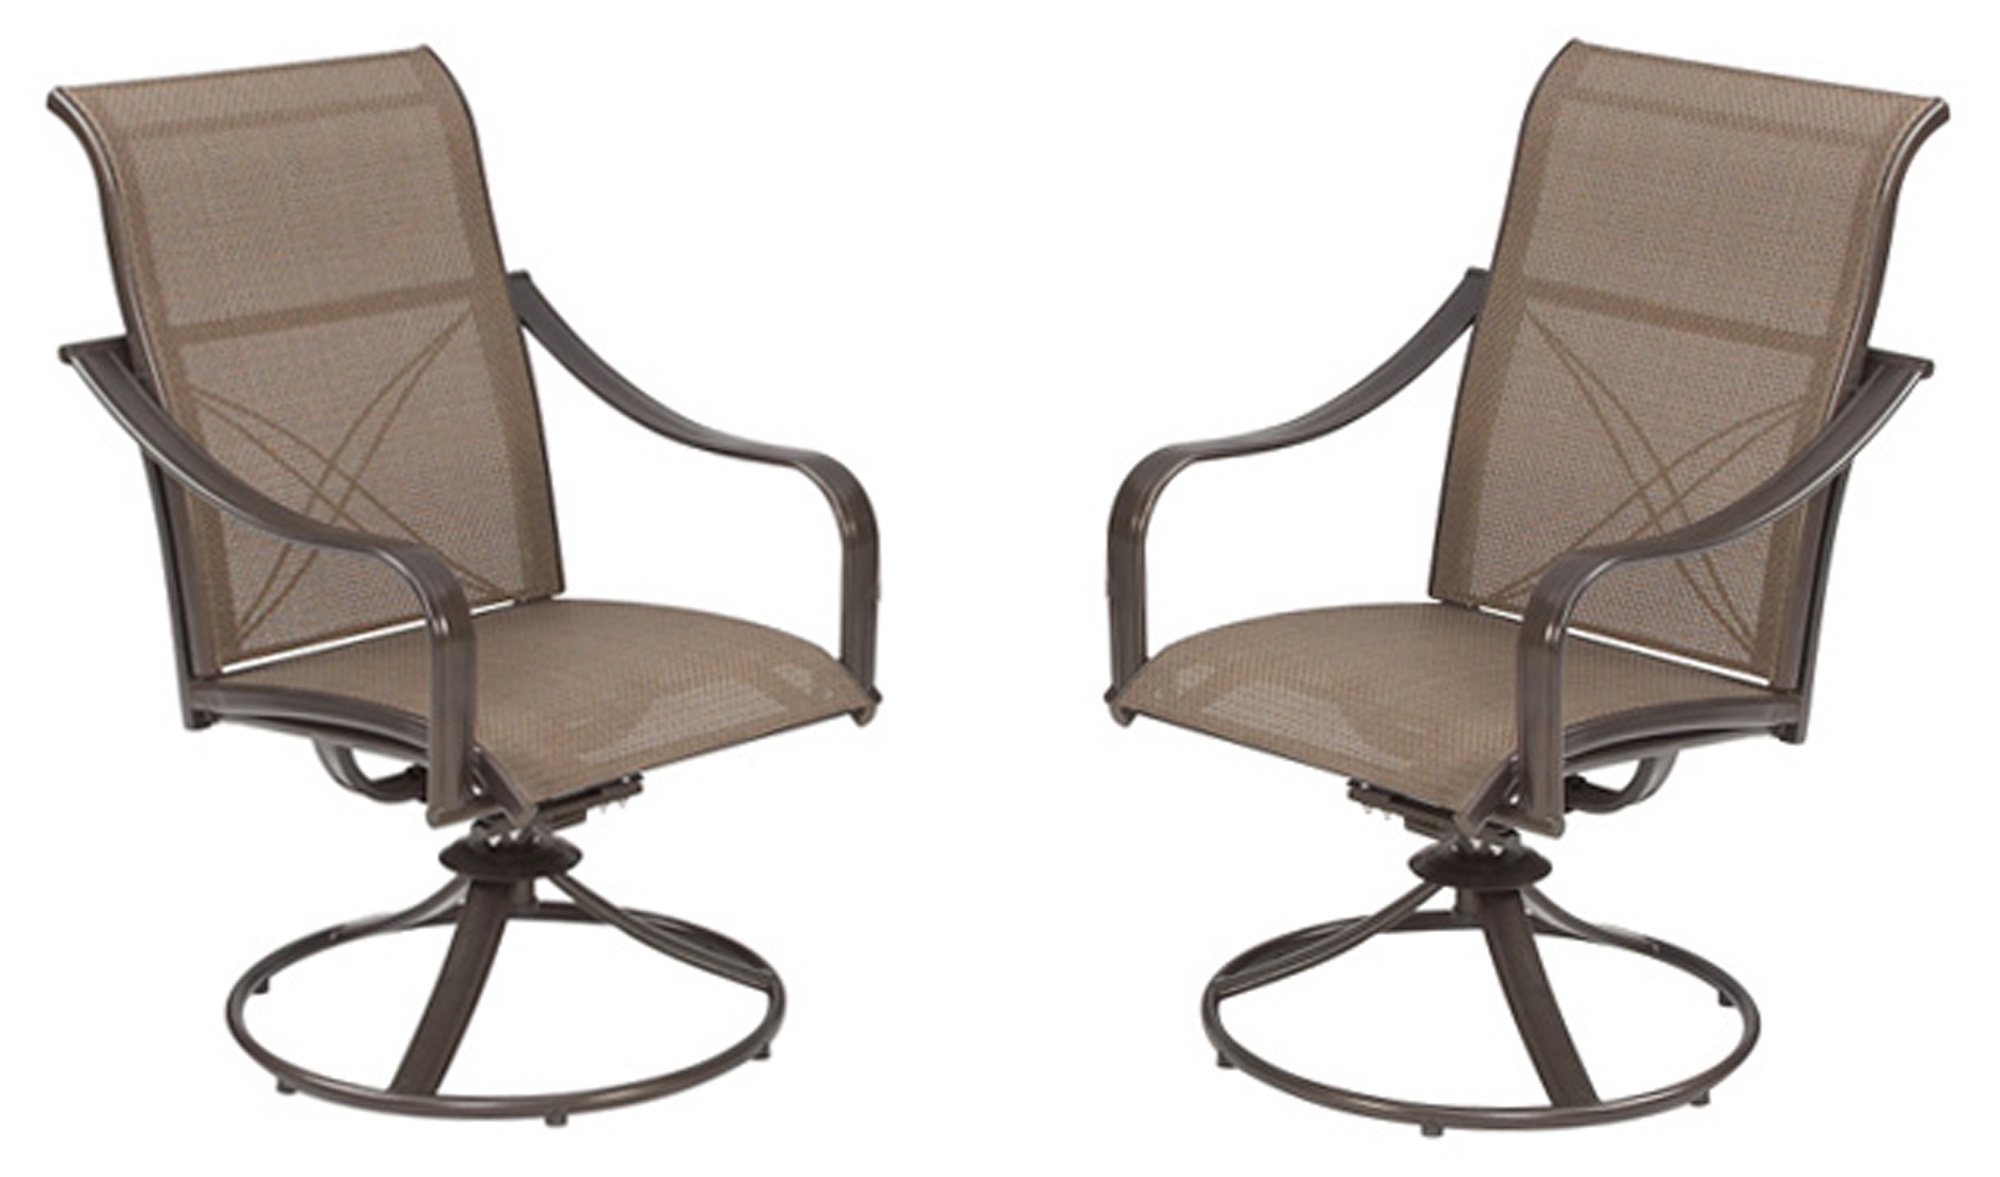 Casual living worldwide recalls swivel patio chairs due to for Outdoor swivel chairs